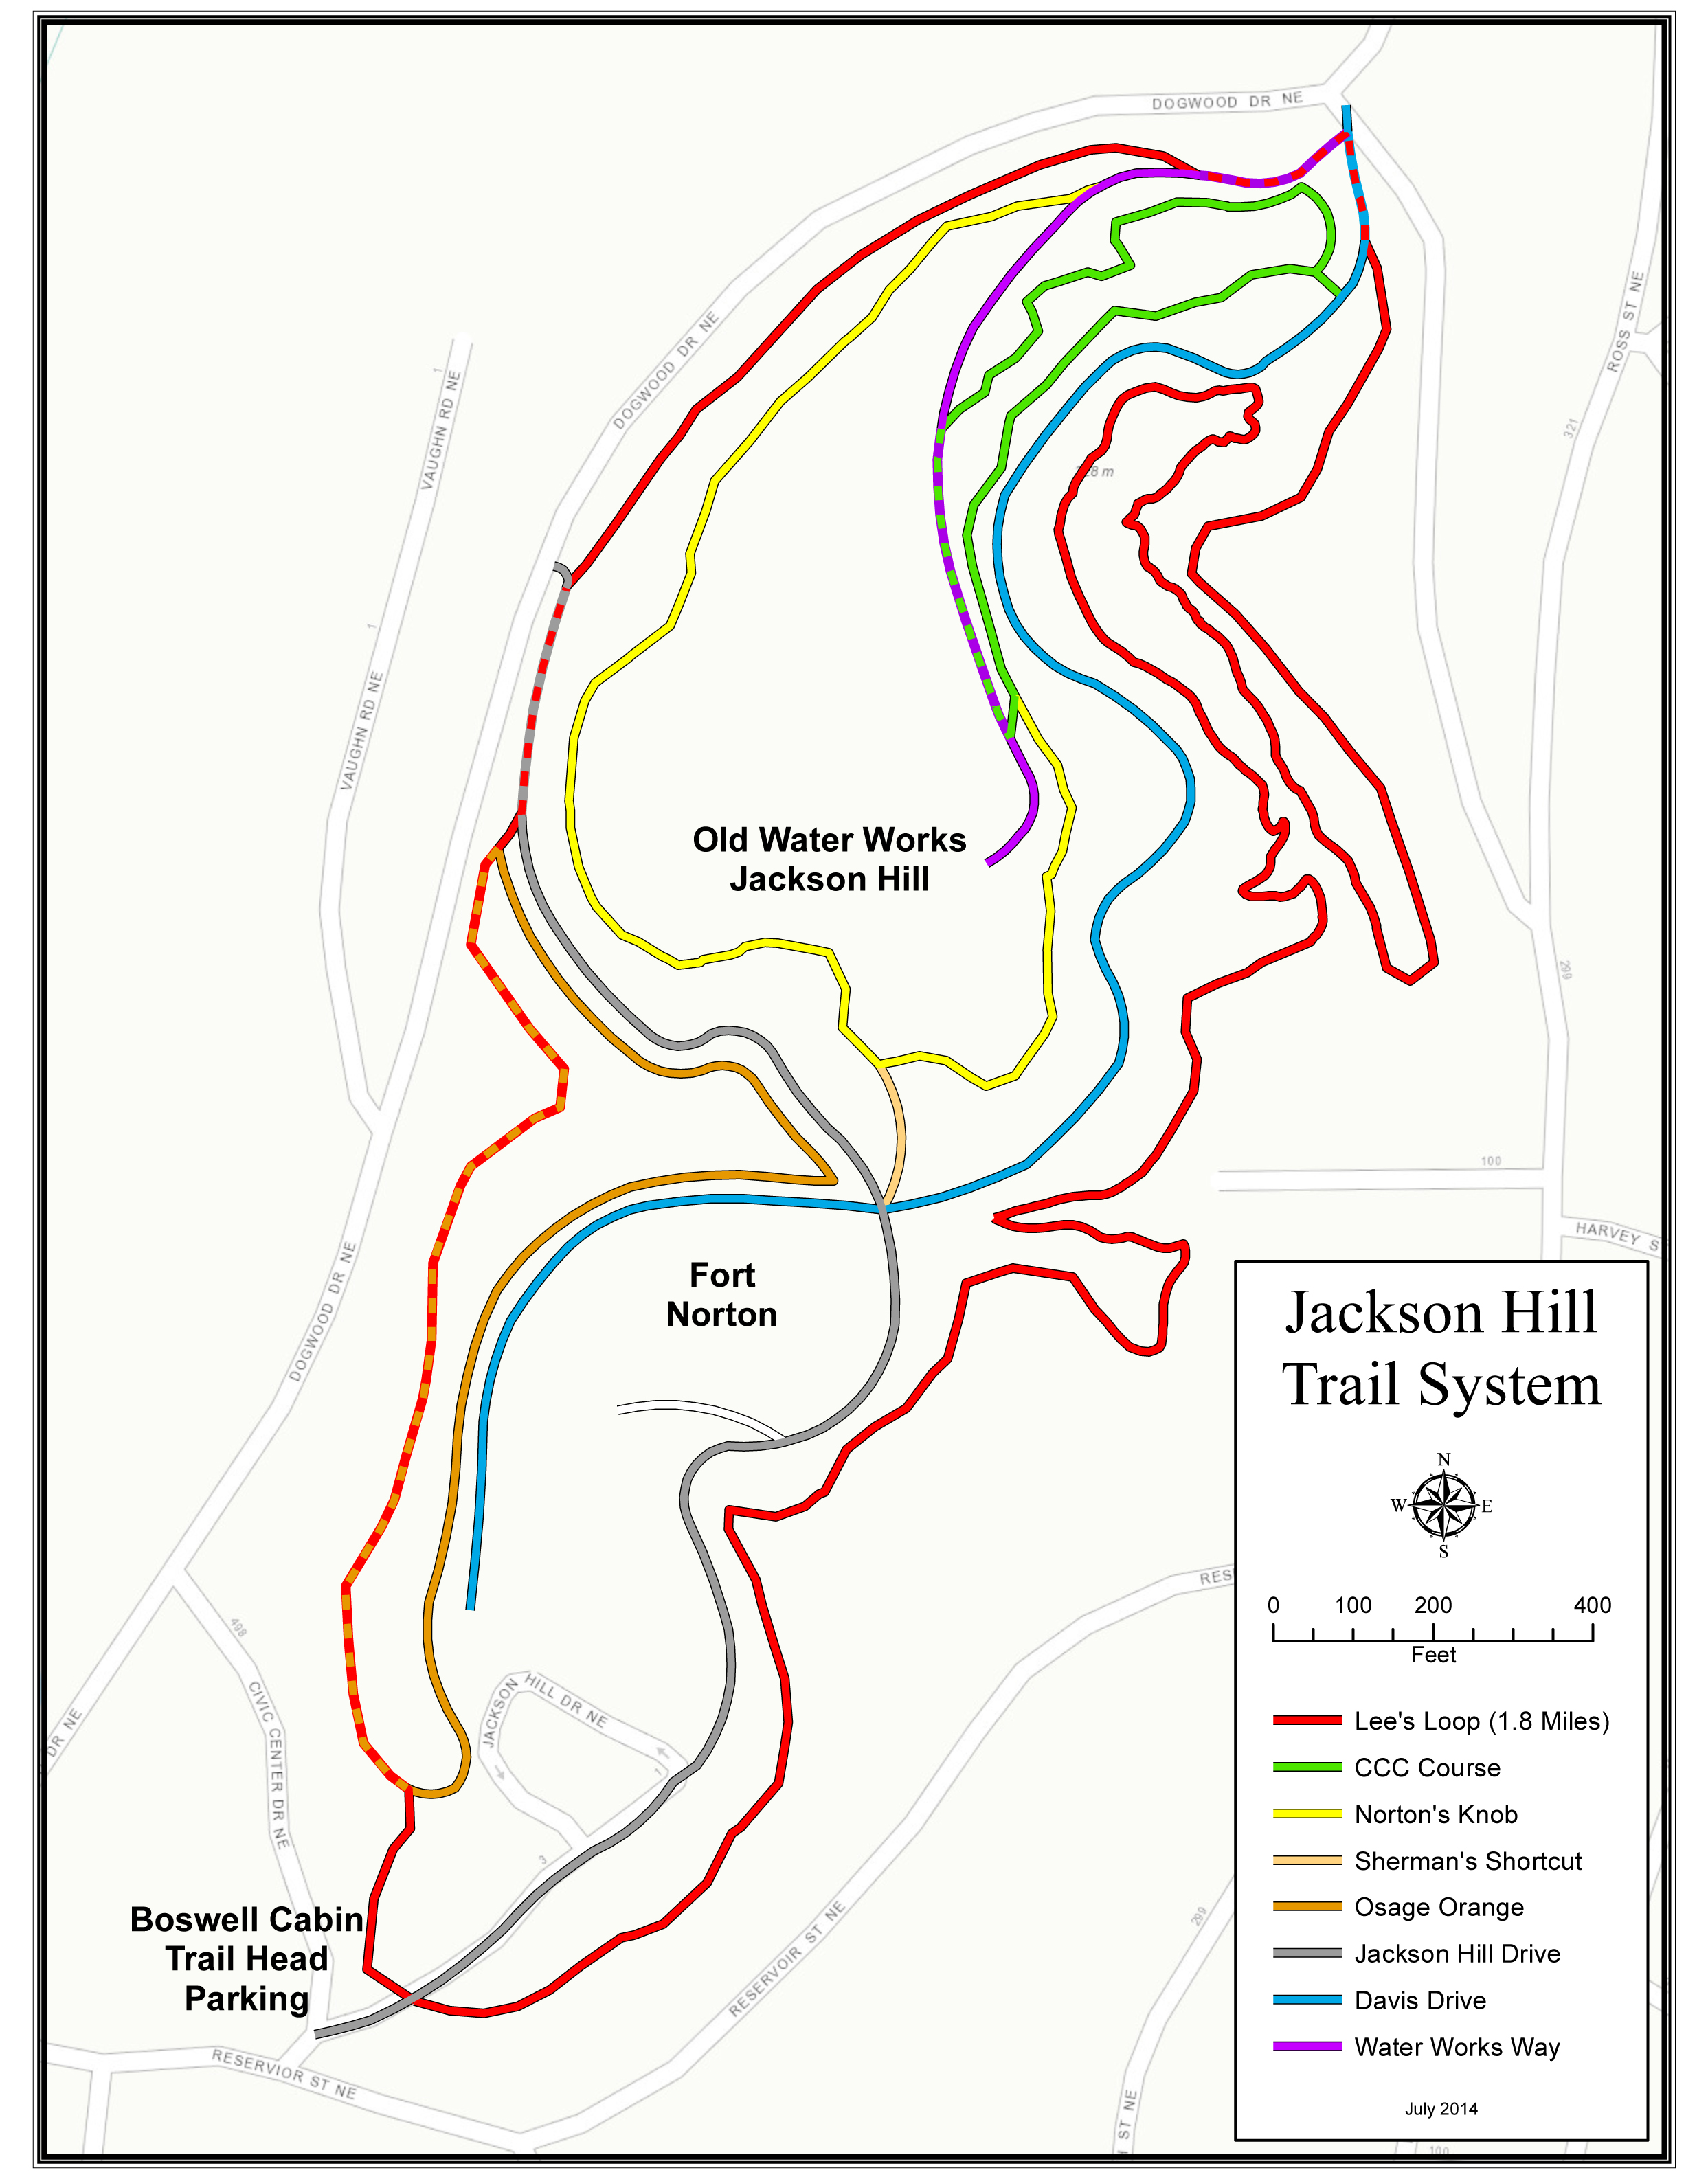 JacksonHill_Trails 08-2014 - REVISED